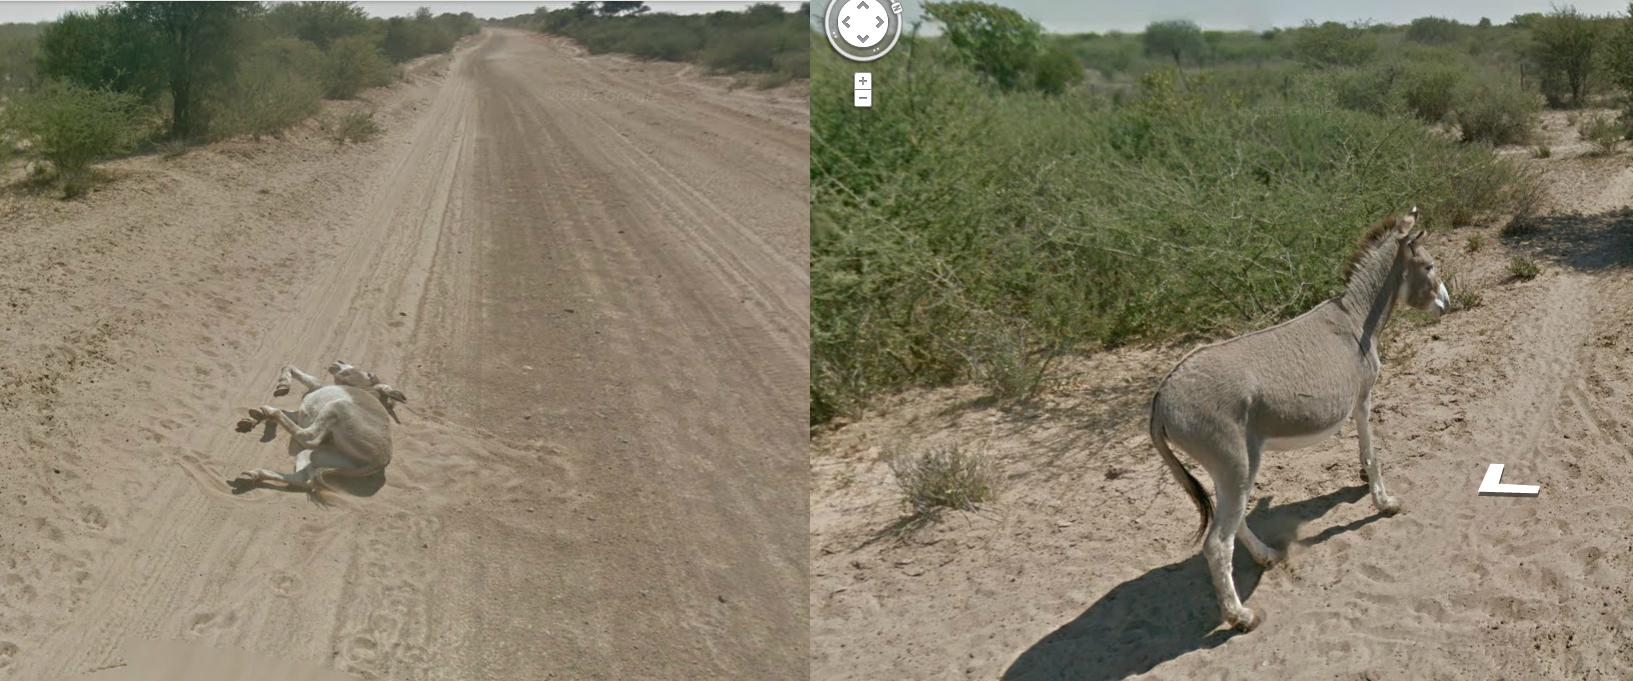 Did Google Street View run over a donkey in the Botswana desert?